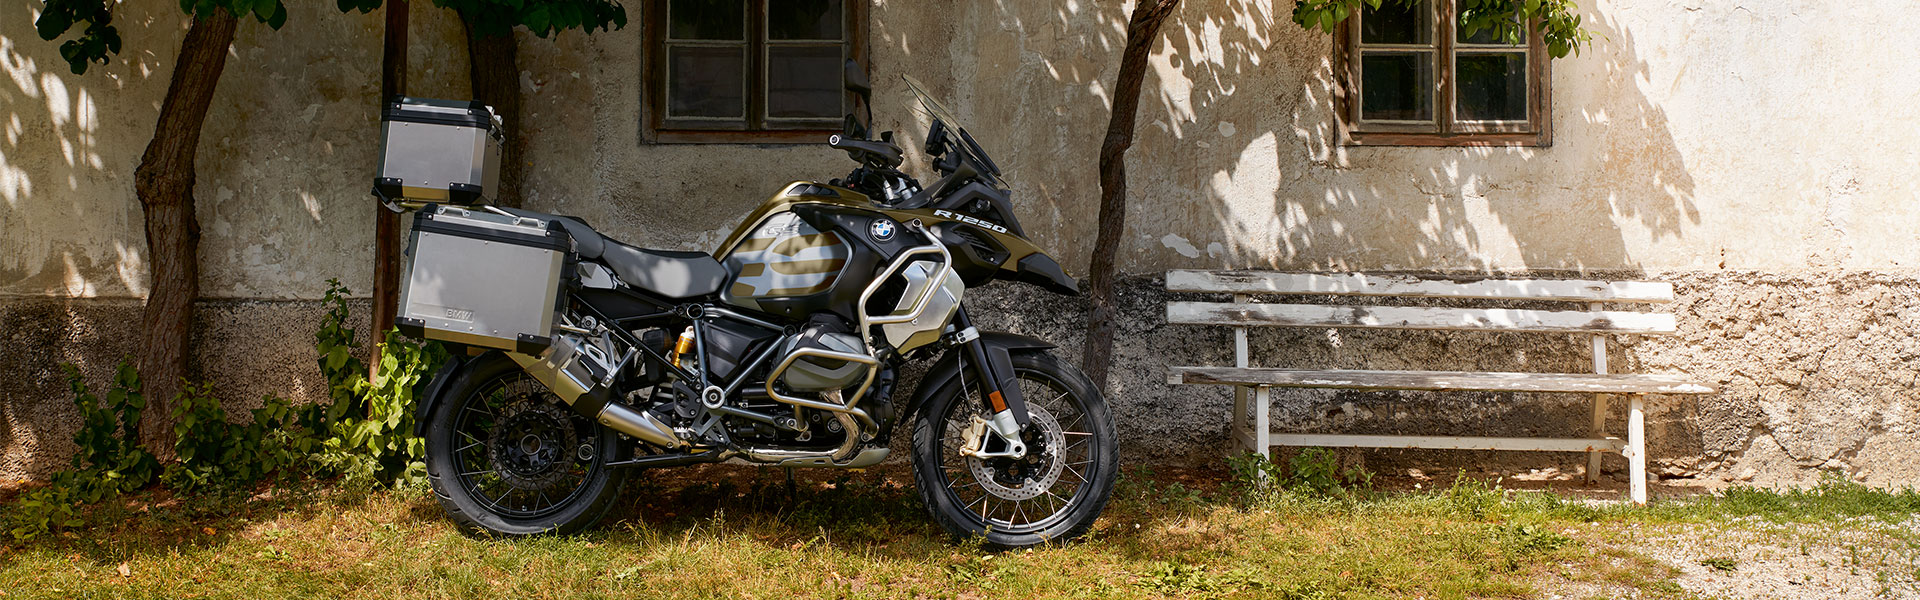 R 1250 GS Adventure Exclusive TE